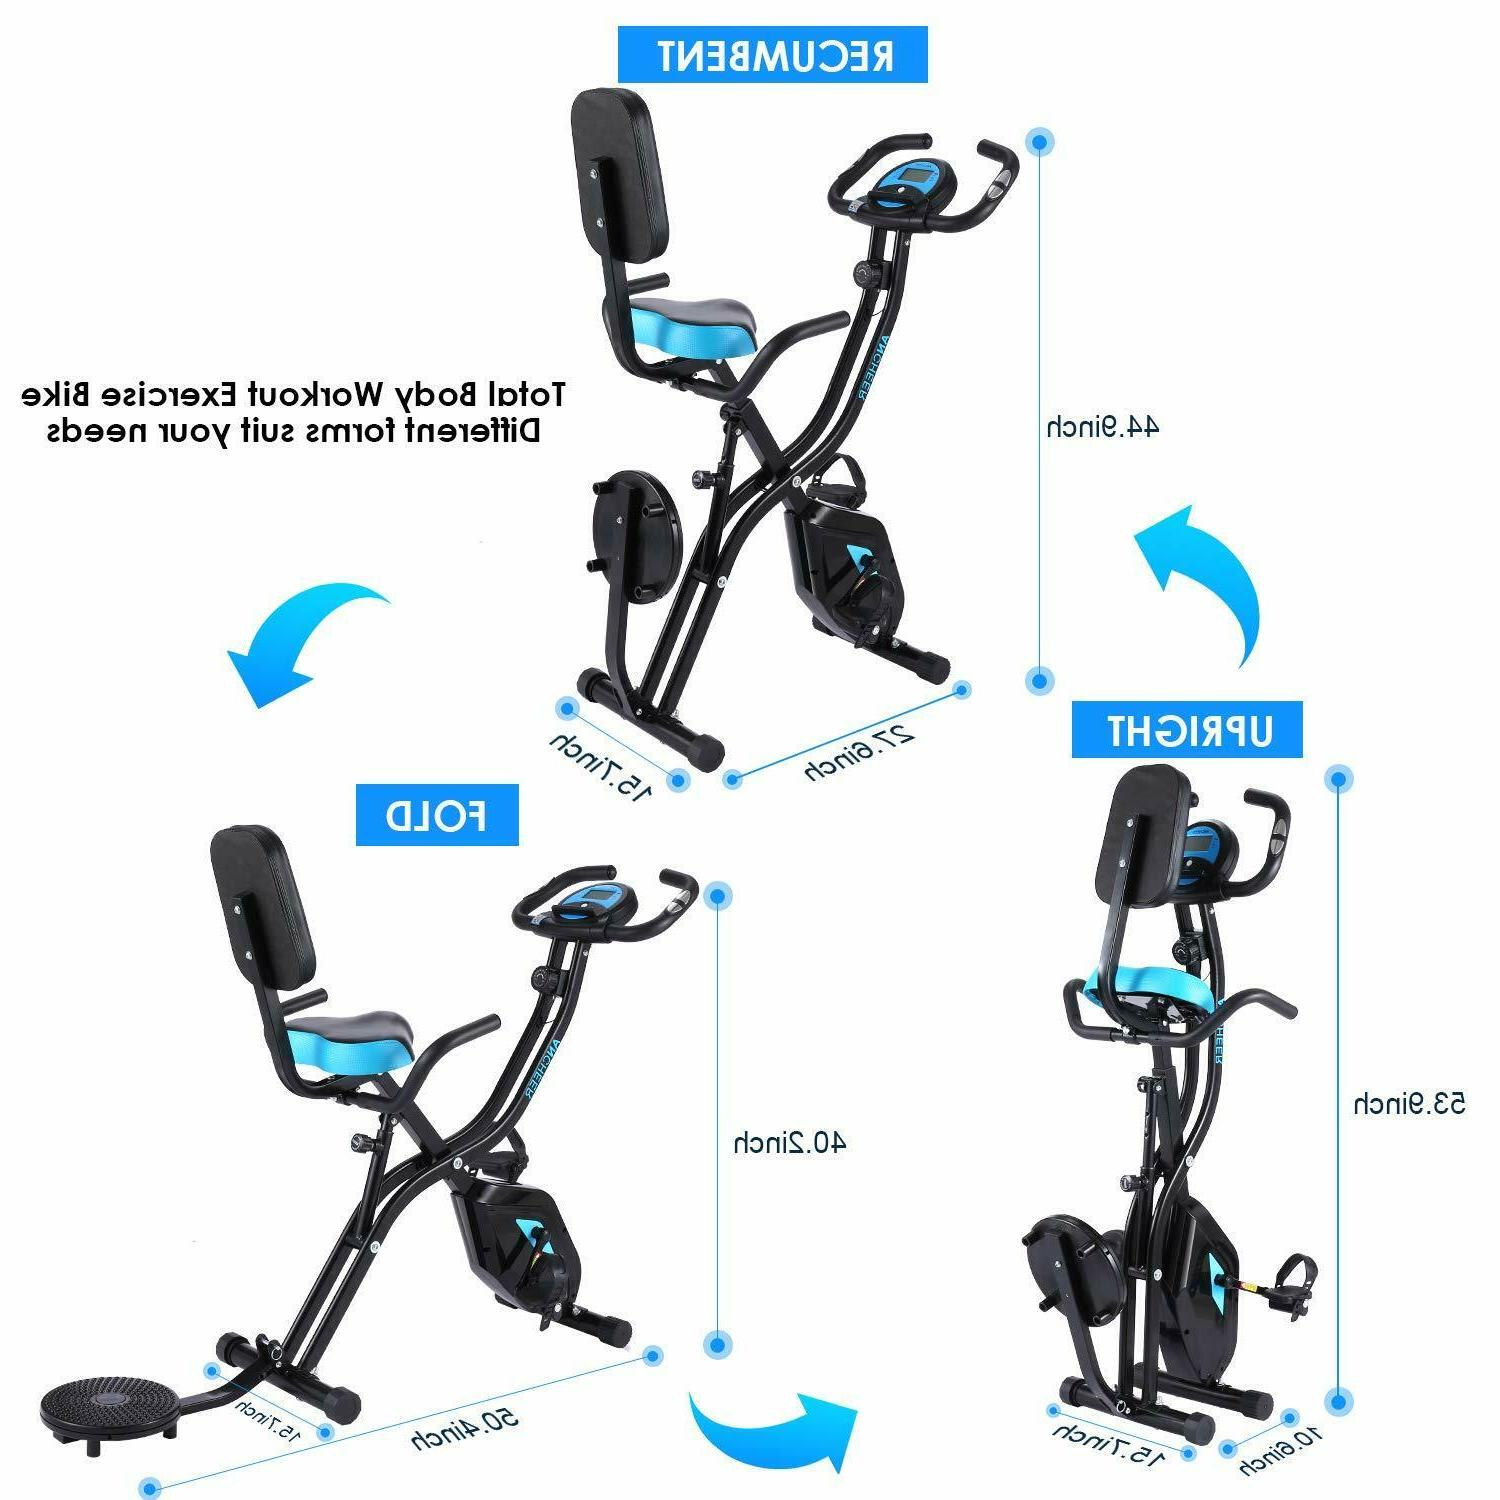 ANCHEER Folding in1 Stationary Cycle